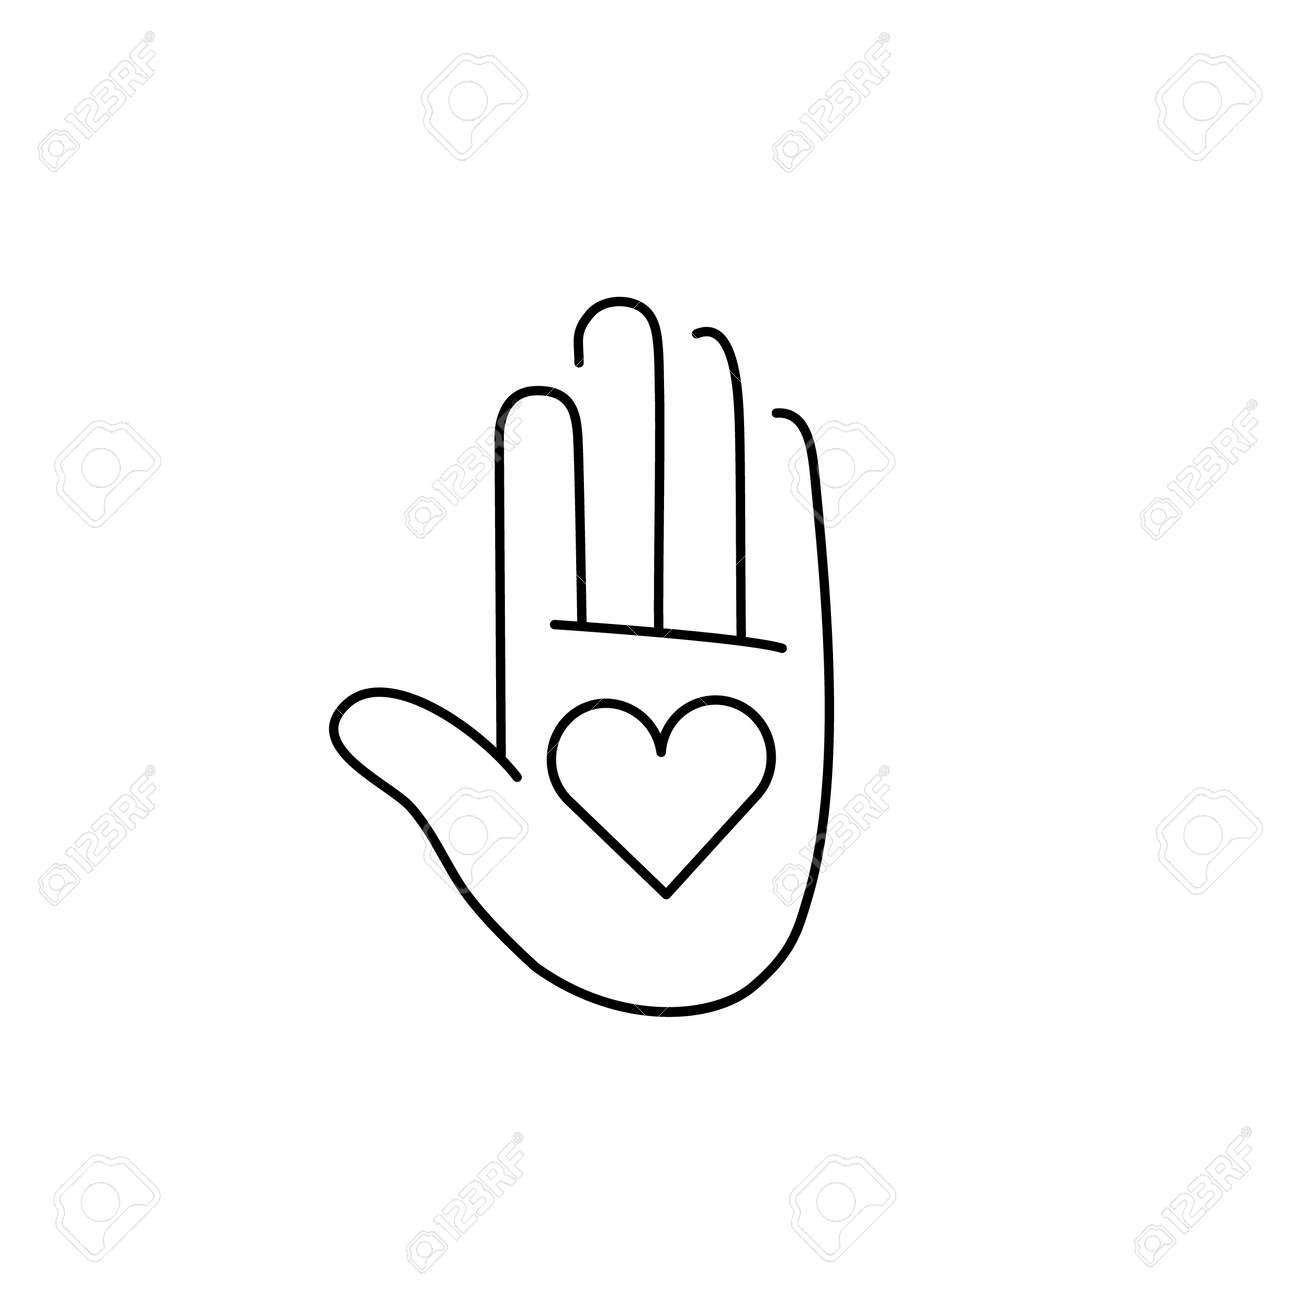 Heart in open hand palm black linear icon on white background heart in open hand palm black linear icon on white background flat design alternative healing buycottarizona Image collections